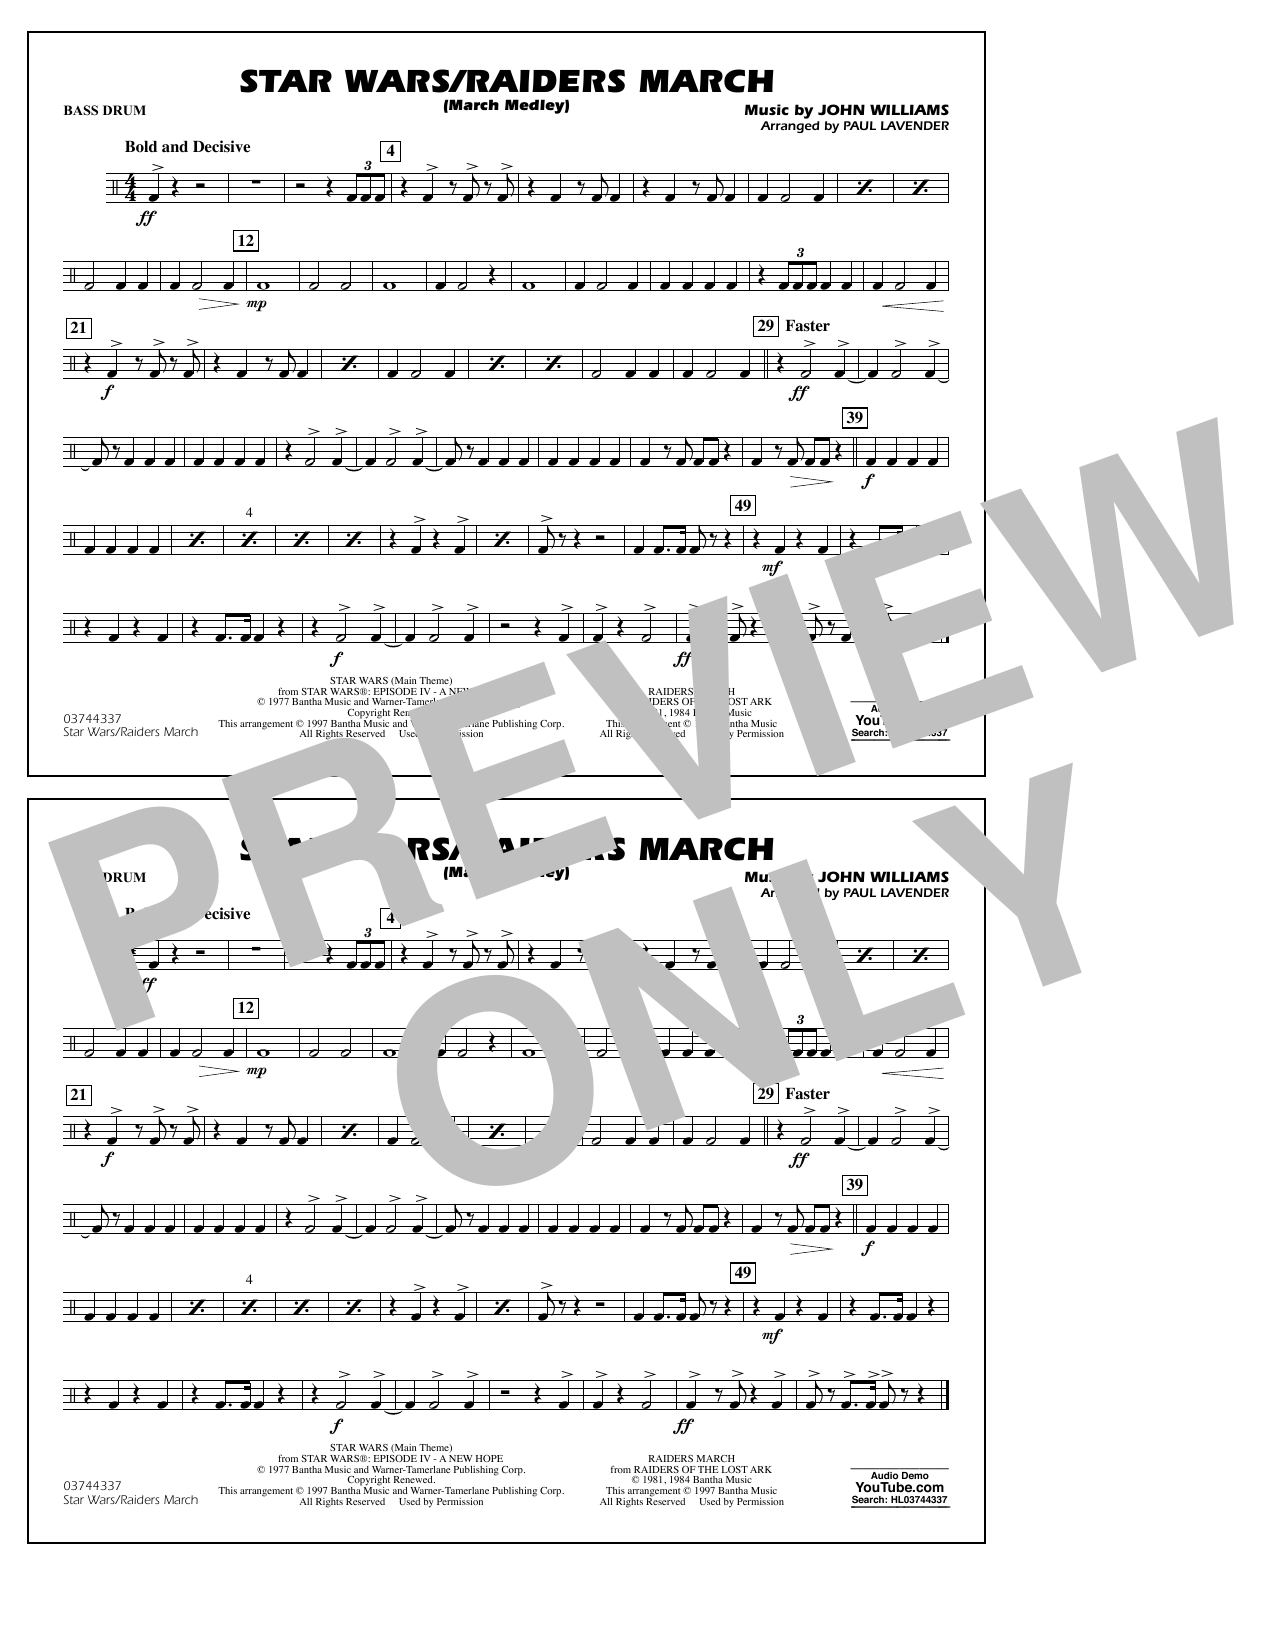 Star Wars/Raiders March - Bass Drum Sheet Music